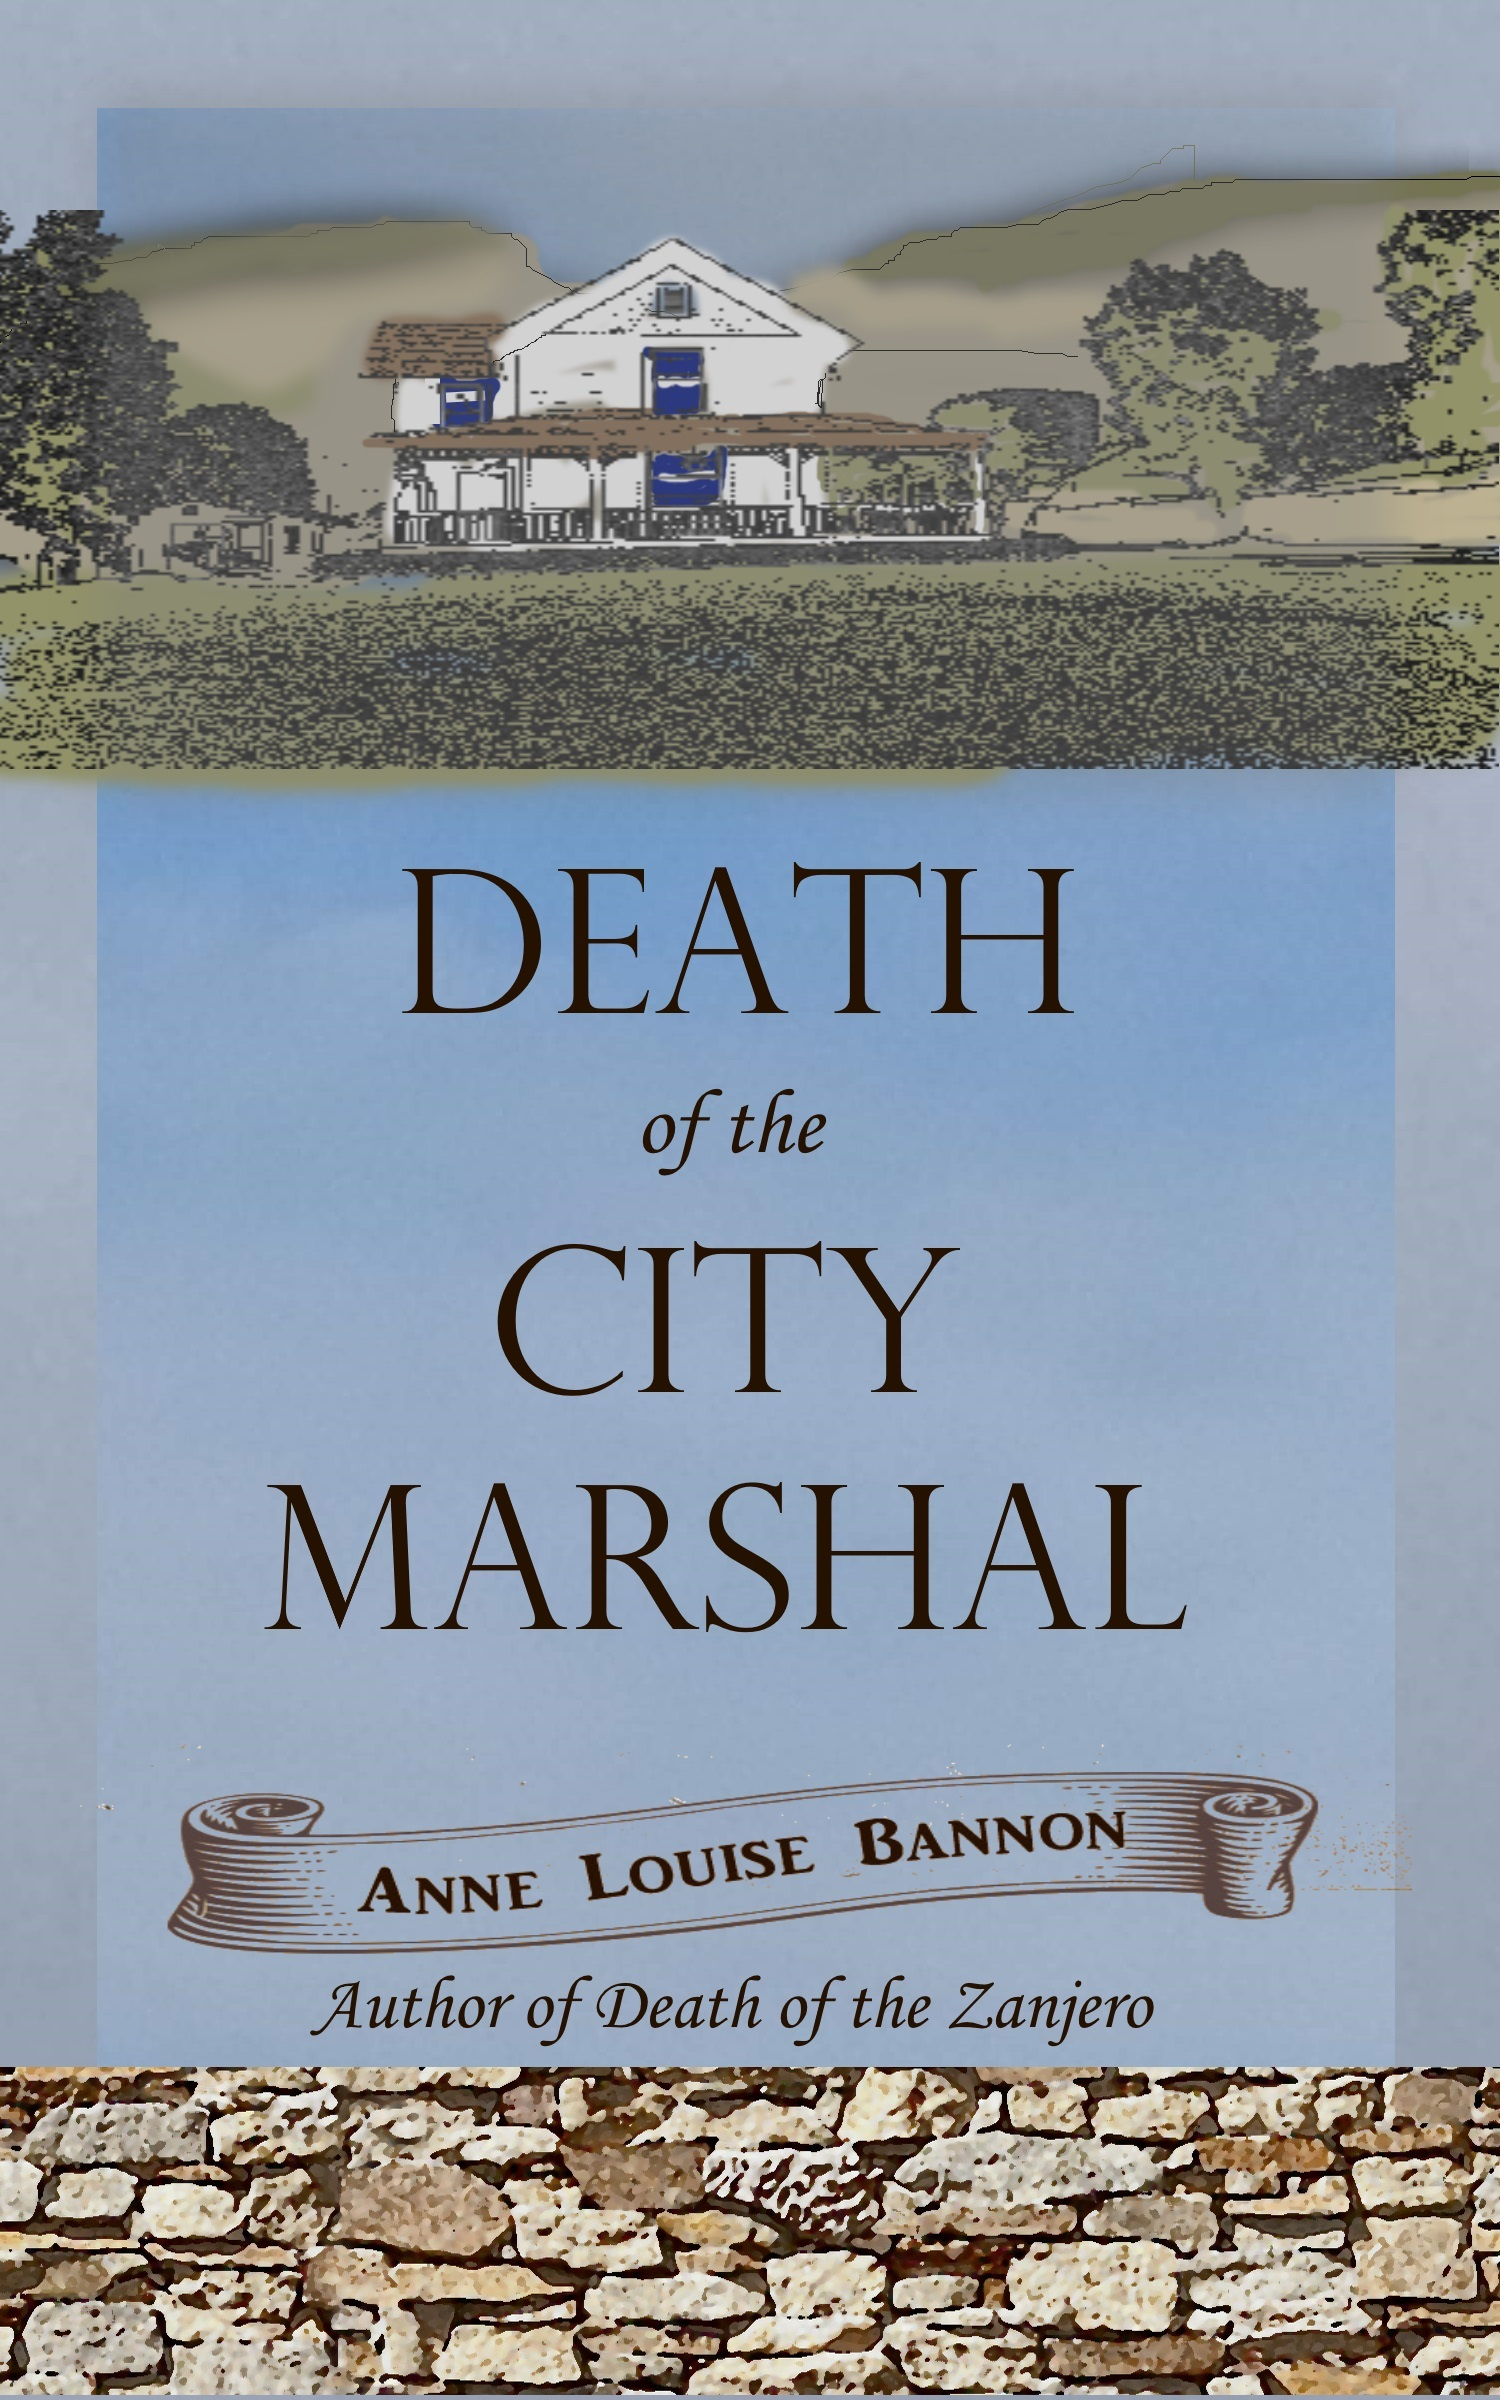 Cover art fpr the historical mystery Novel Death of the City Marshal by Anne Louise Bannon, the second in the Old Los Angeles series